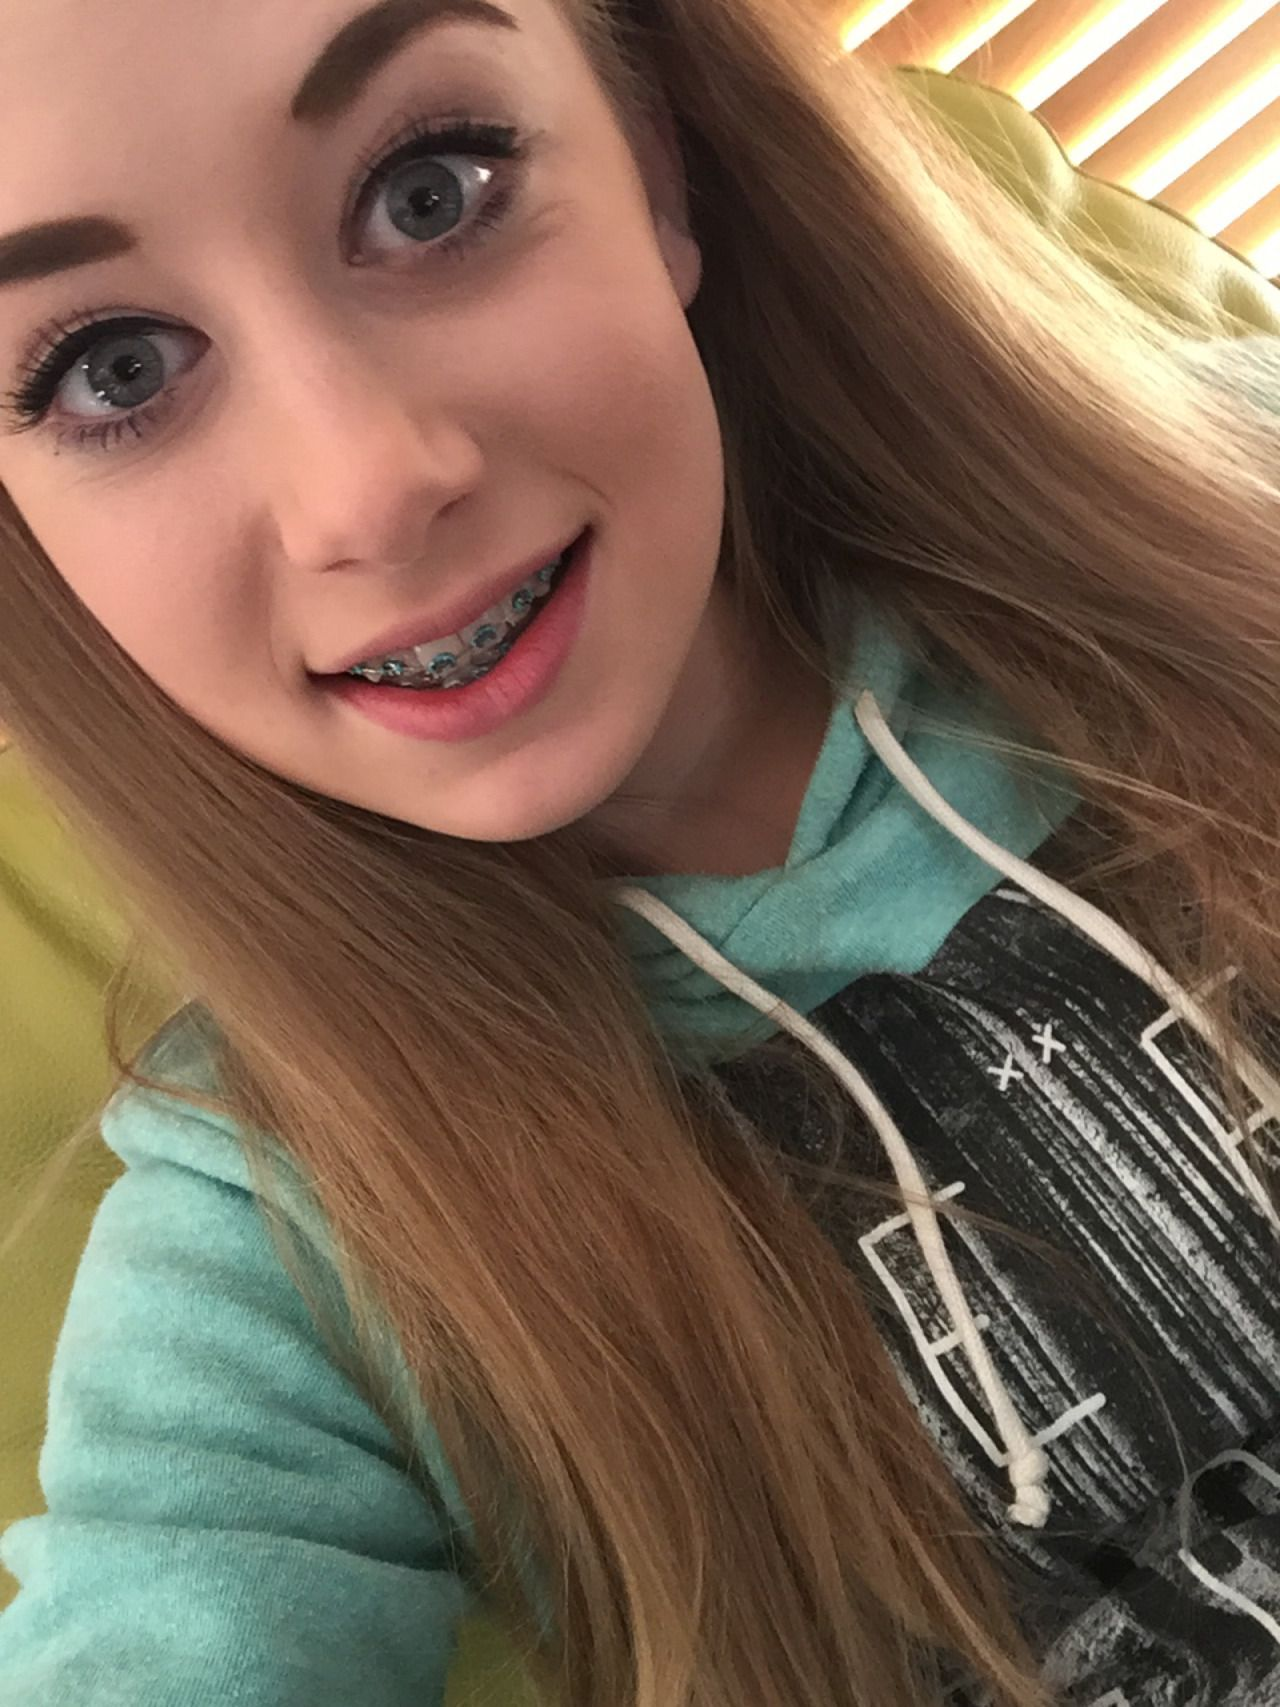 Cute girl young teens with braces facial